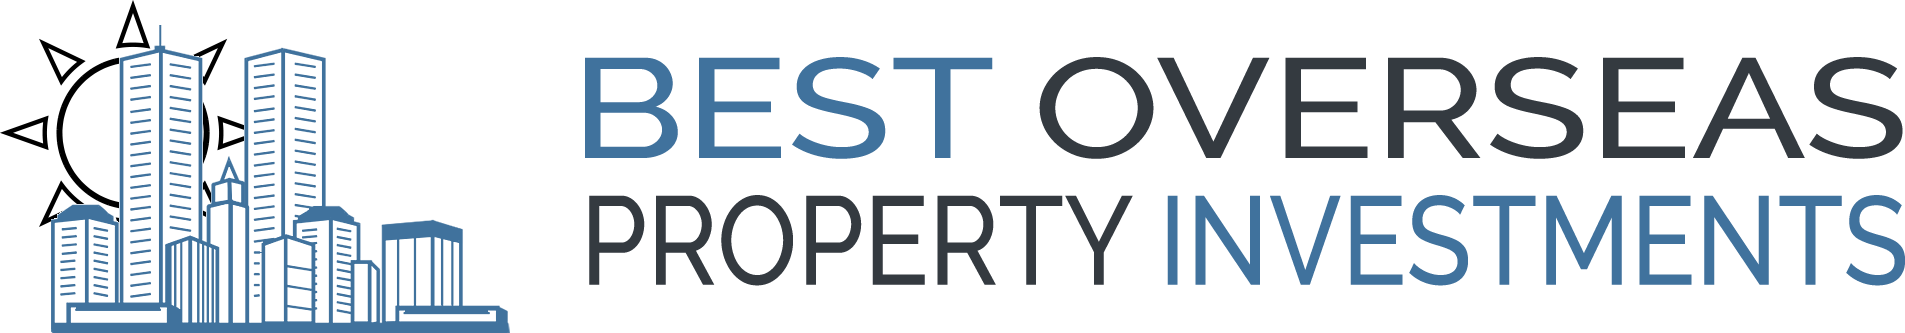 Best Overseas Property Investments